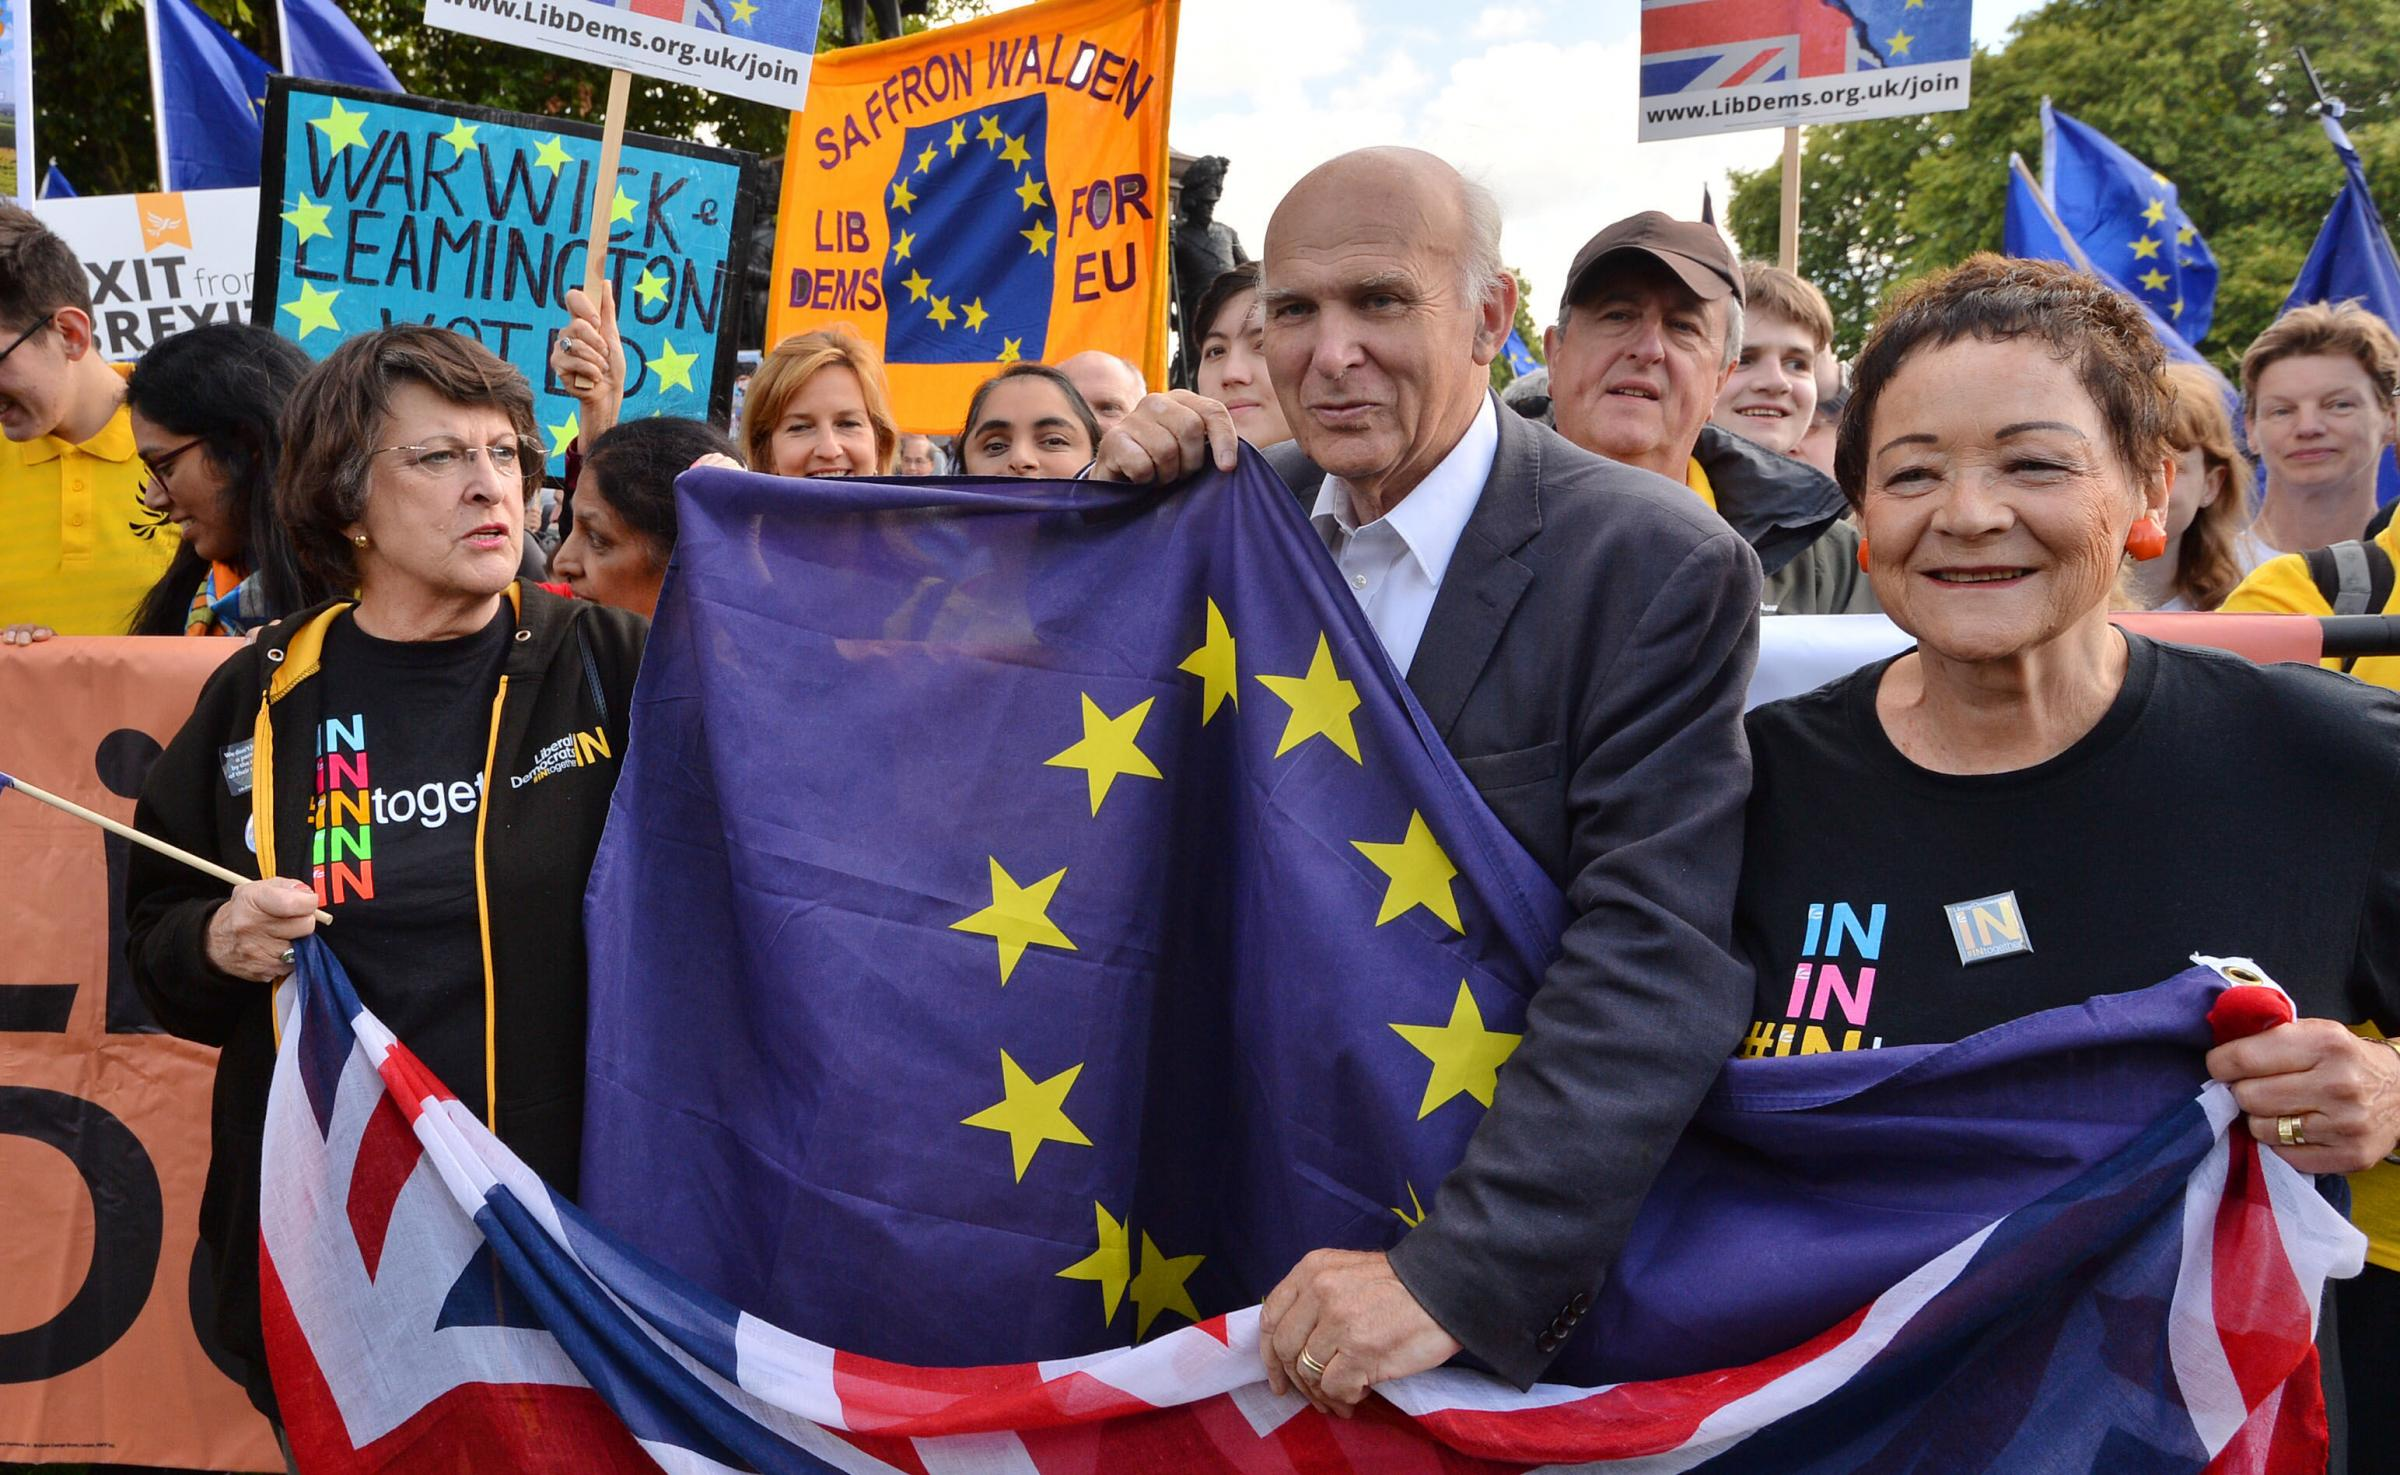 Liberal Democrat leader Sir Vince Cable joins protesters at Hyde Park Corner ahead of a pro-EU People's March For Europe in London. Photograph: PA